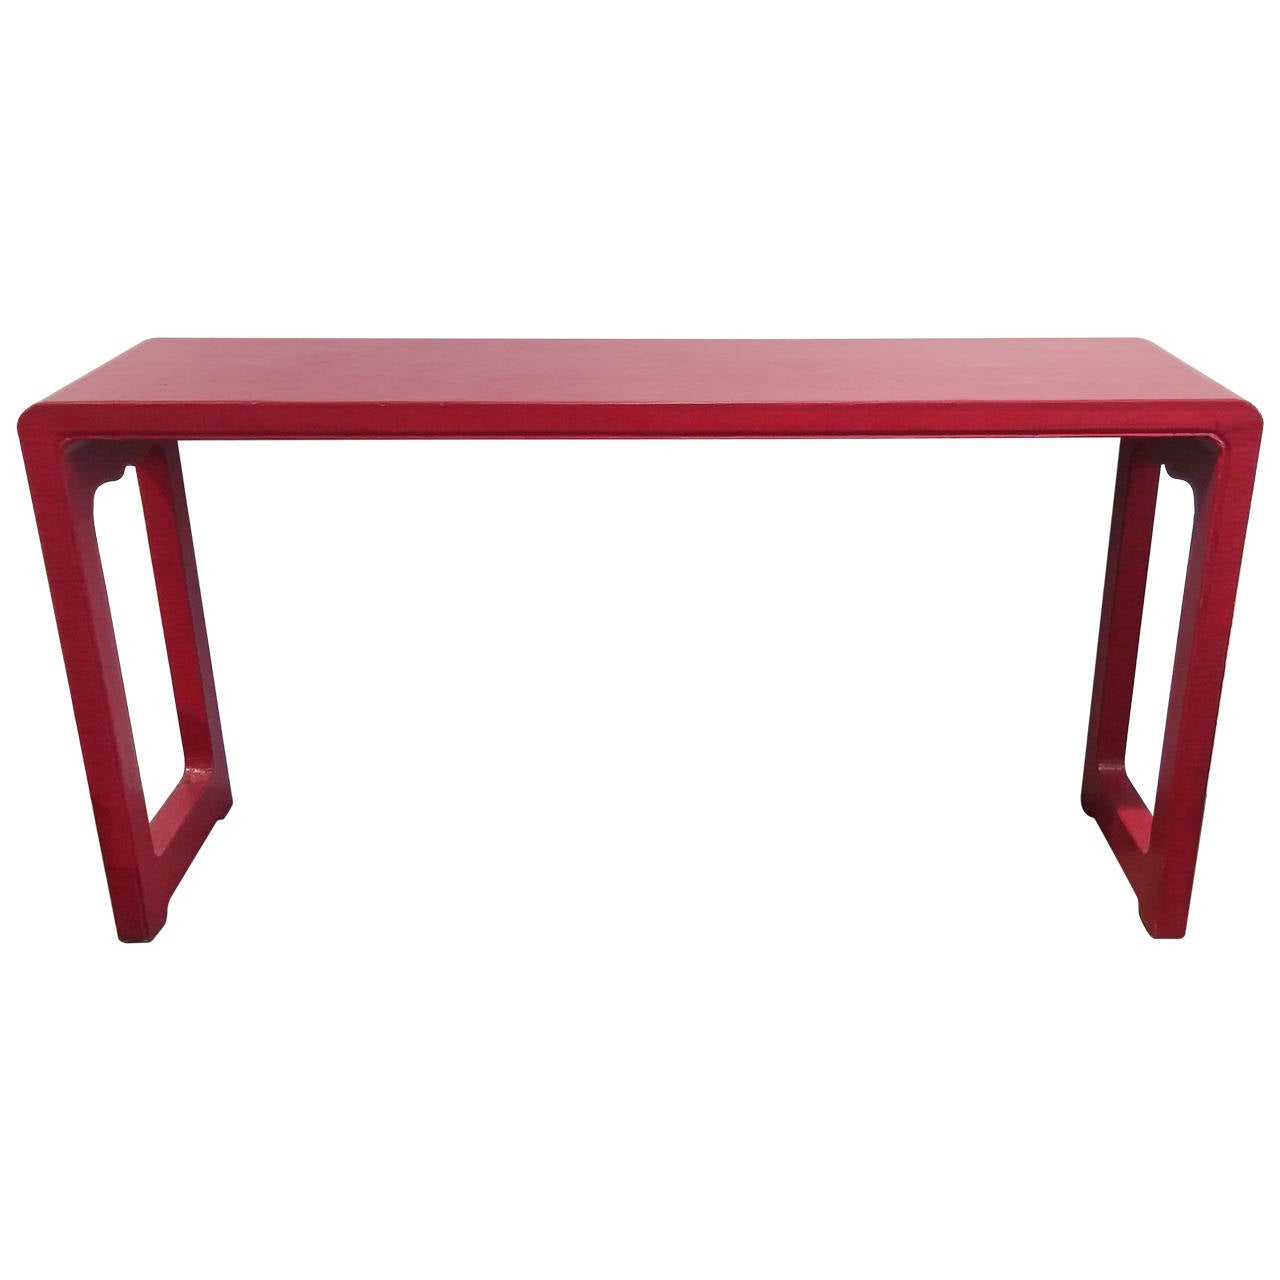 Asian Alter Table in Red Finish 1